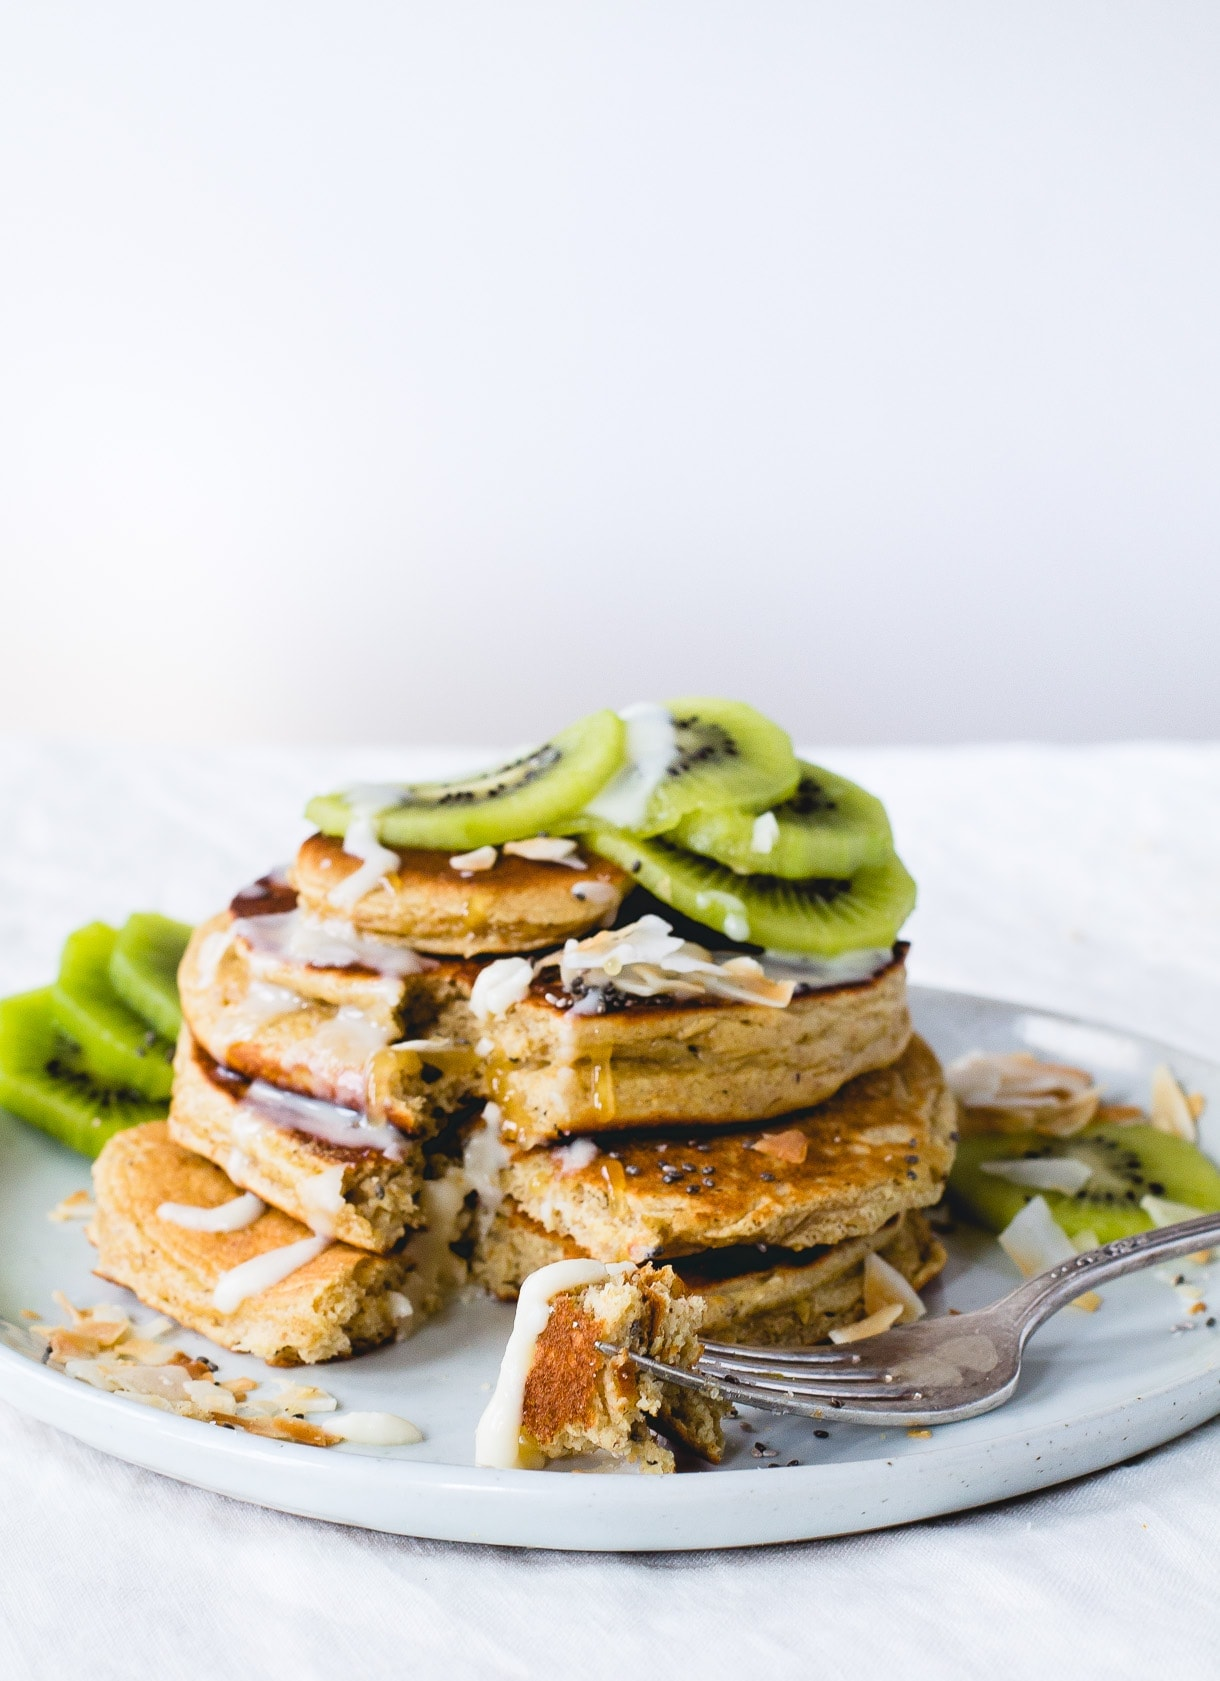 Fluffy Gluten-Free Pancakes with Coconut Butter & Kiwis.